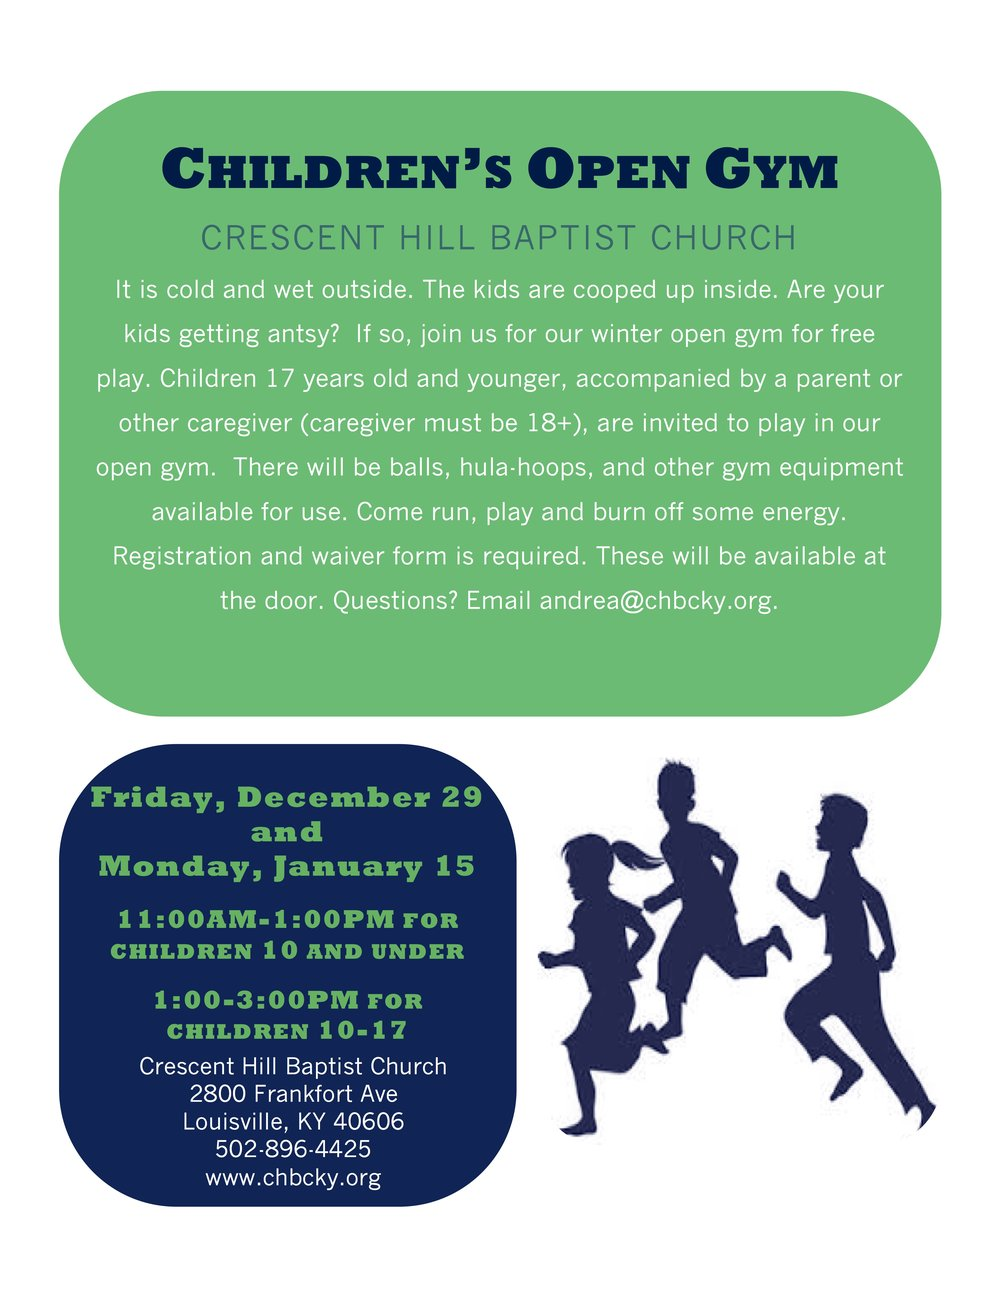 open gym flier.jpg